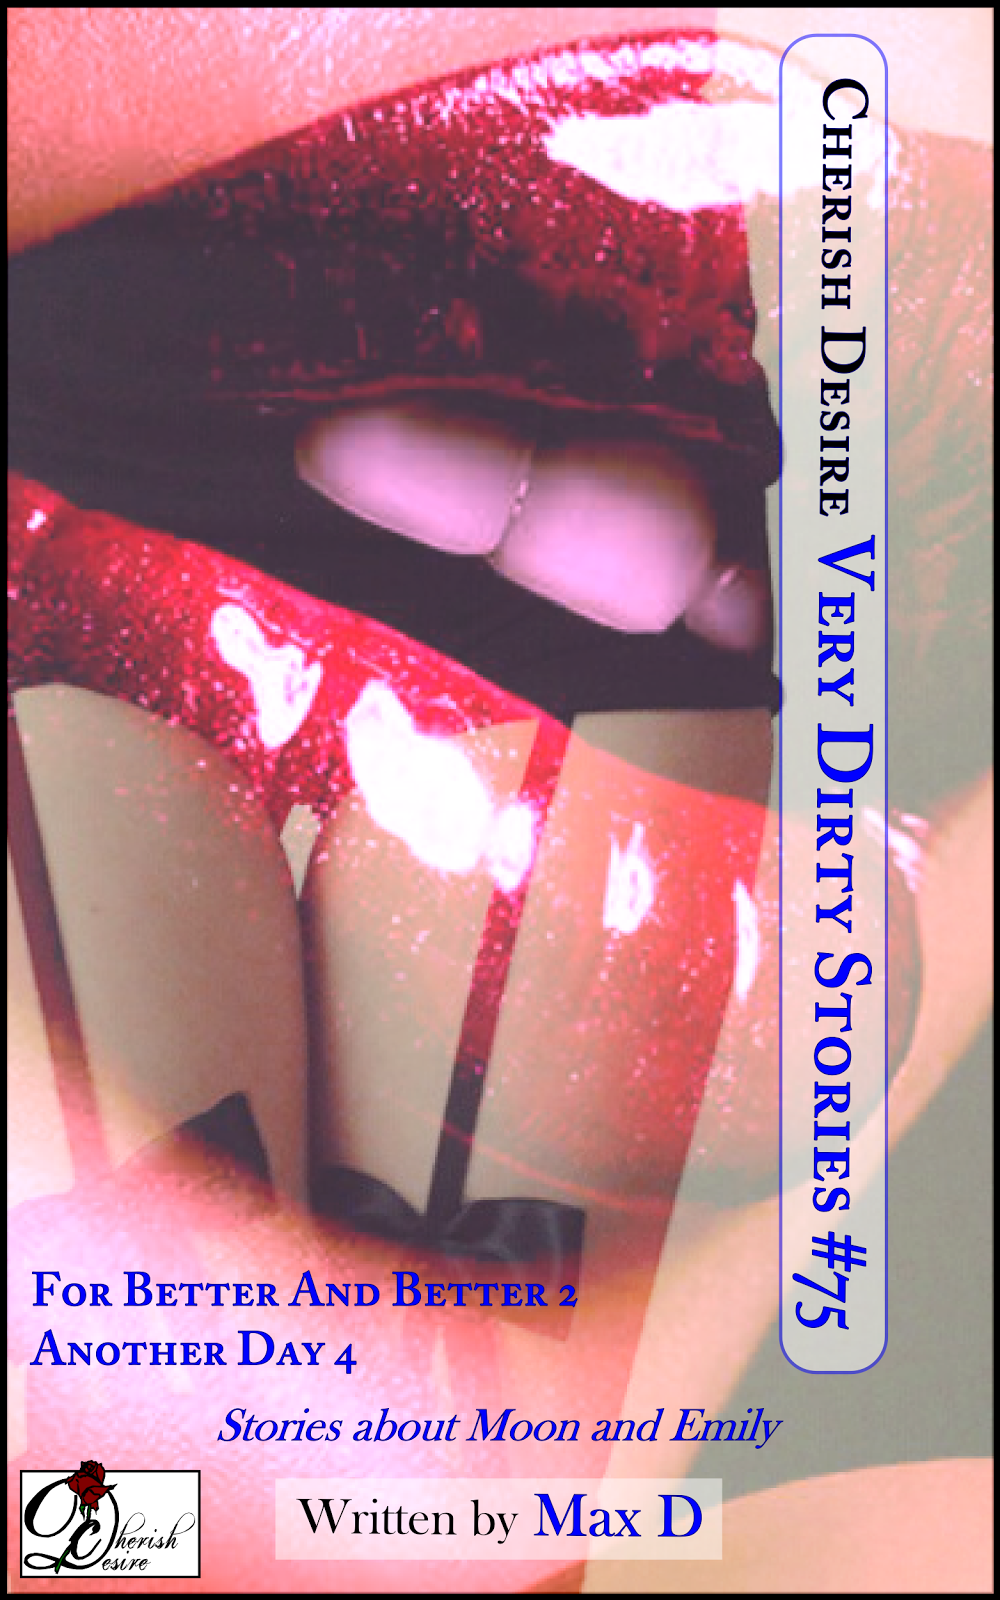 Cherish Desire: Very Dirty Stories #75, Max D, erotica